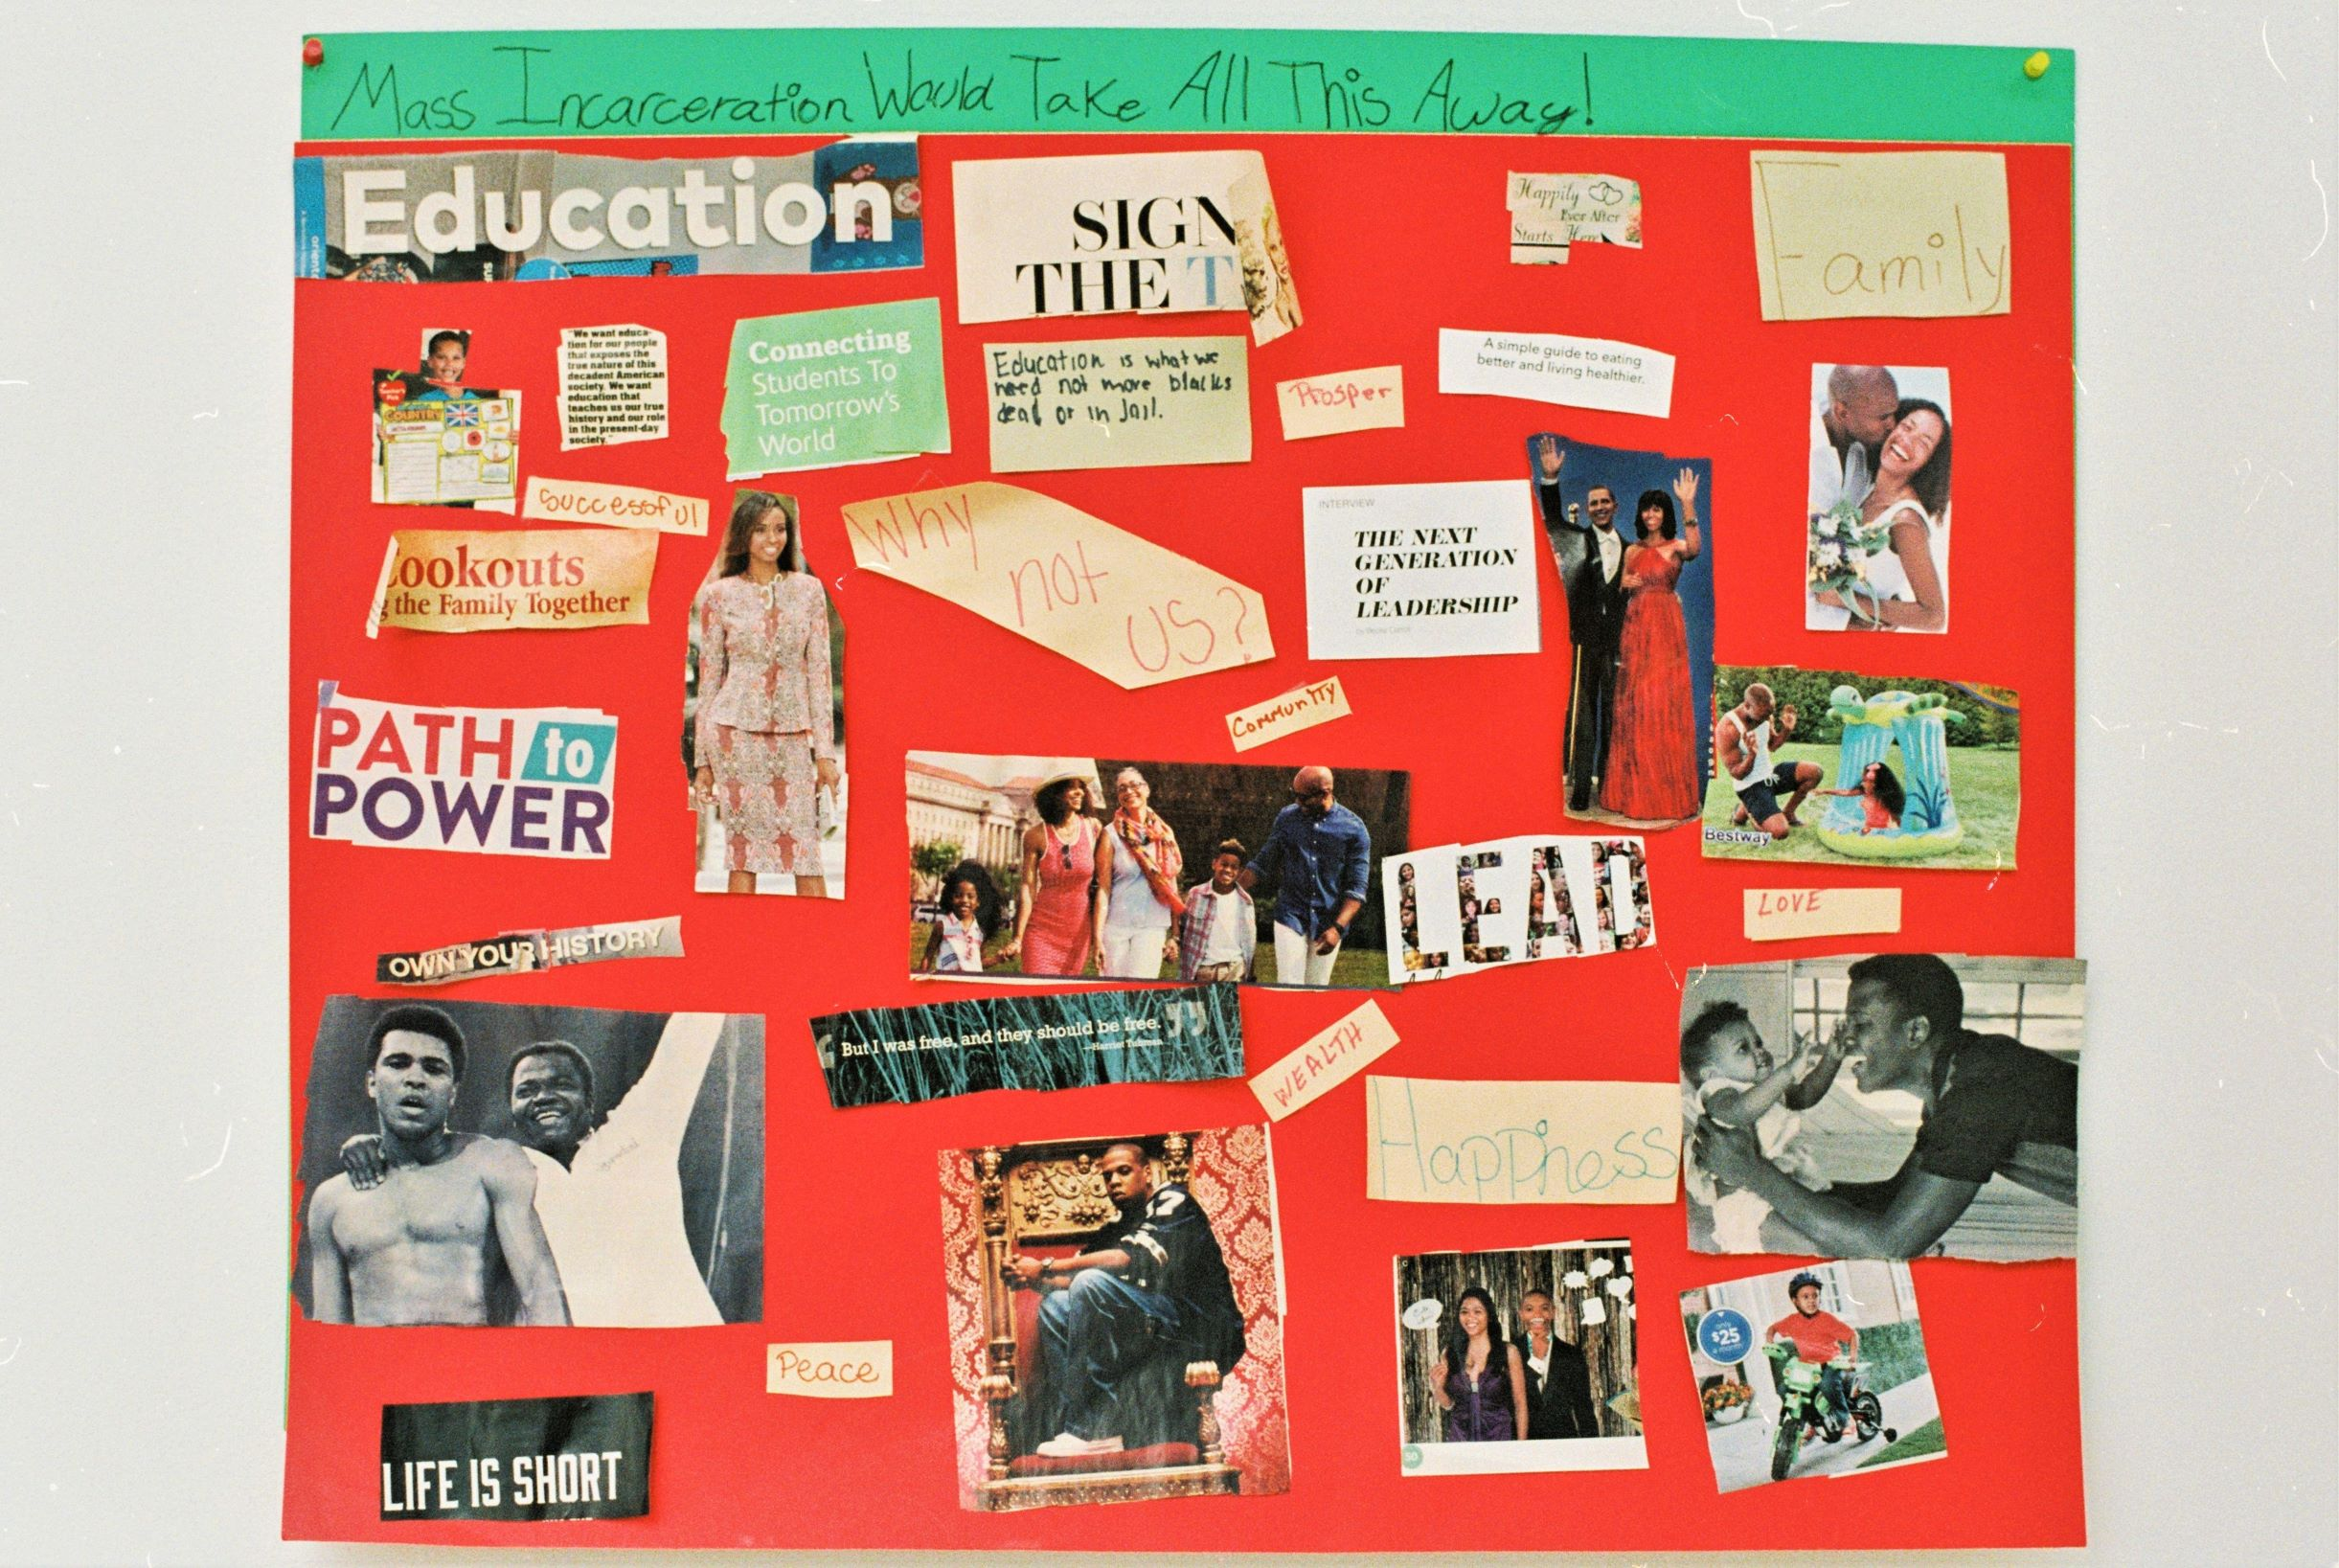 """Image: A red vision board created by a BBF youth participant. The heading reads: """"Mass Incarceration Would Take All This Away!"""" Below, there are magazine cutouts of famous African-Americans, including Barack and Michelle Obama, Muhammad Ali, and Jay-Z, as well as average people together in loving postures. Interspersed amongs the pictures are words and phrases like, """"Peace,"""" """"LEAD,"""" and """"Why not us?"""" Photo by Eric K. Roberts."""